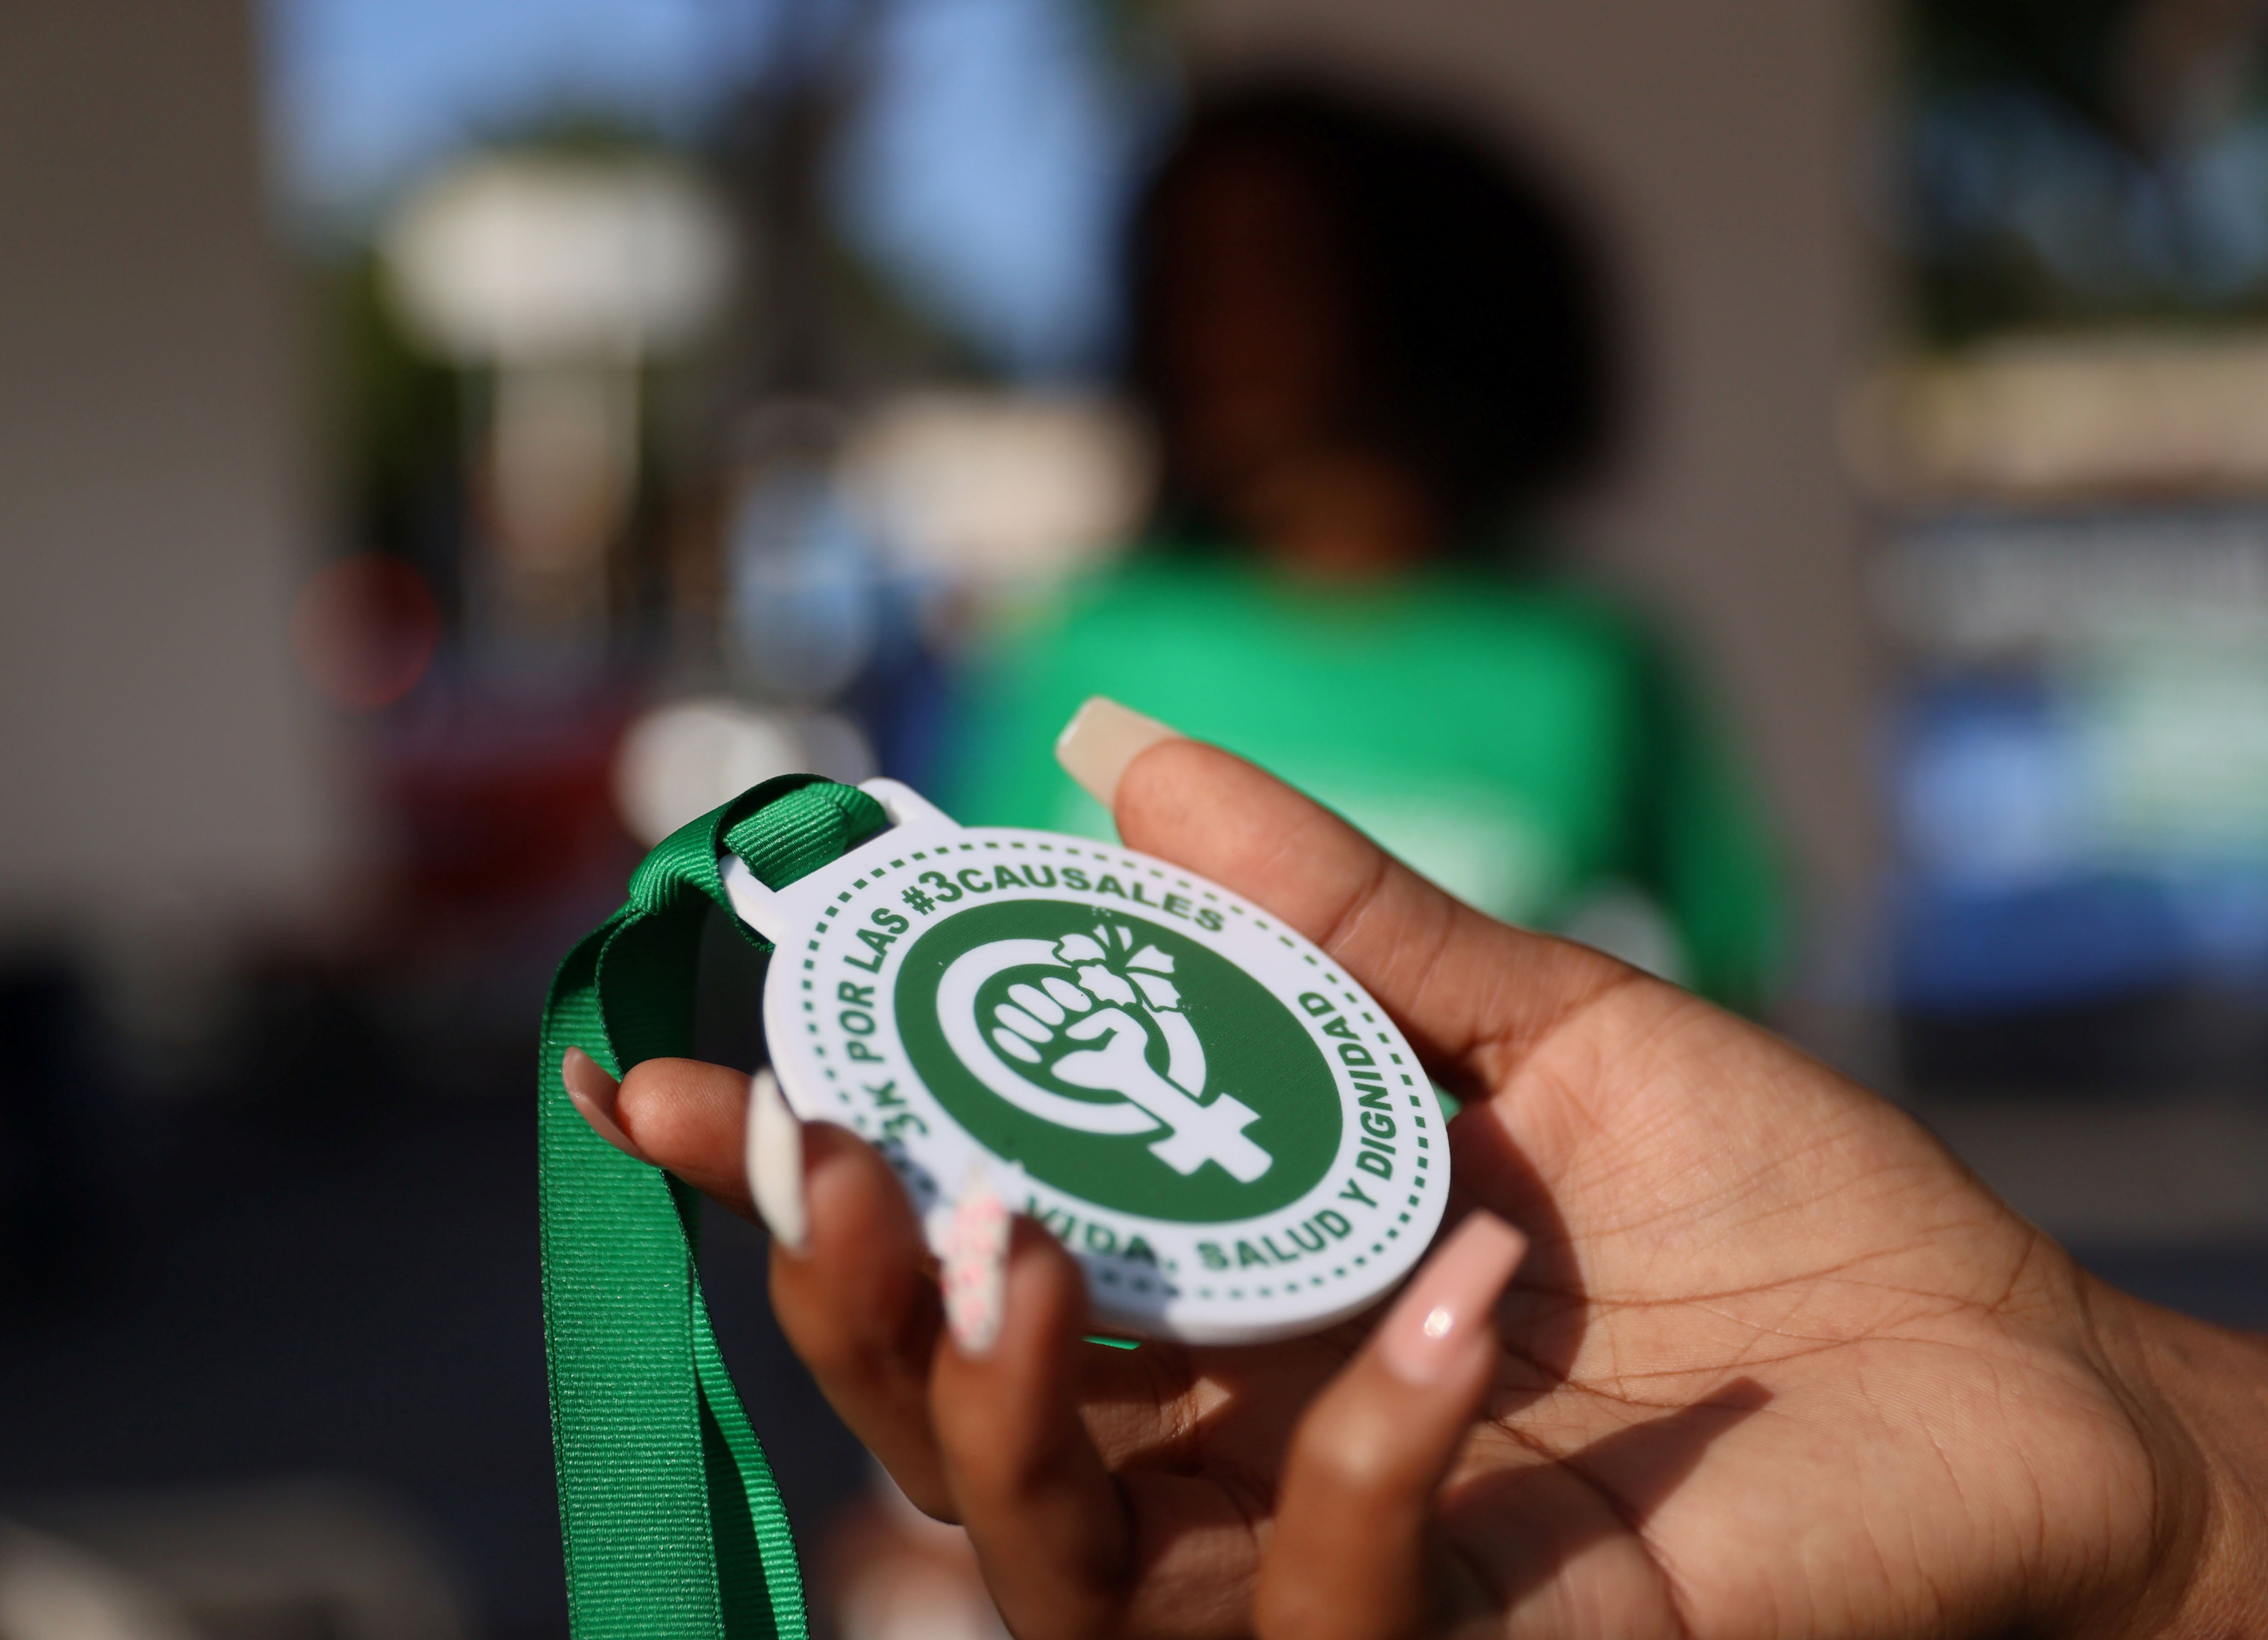 Dominican Republic: End Total Abortion Ban